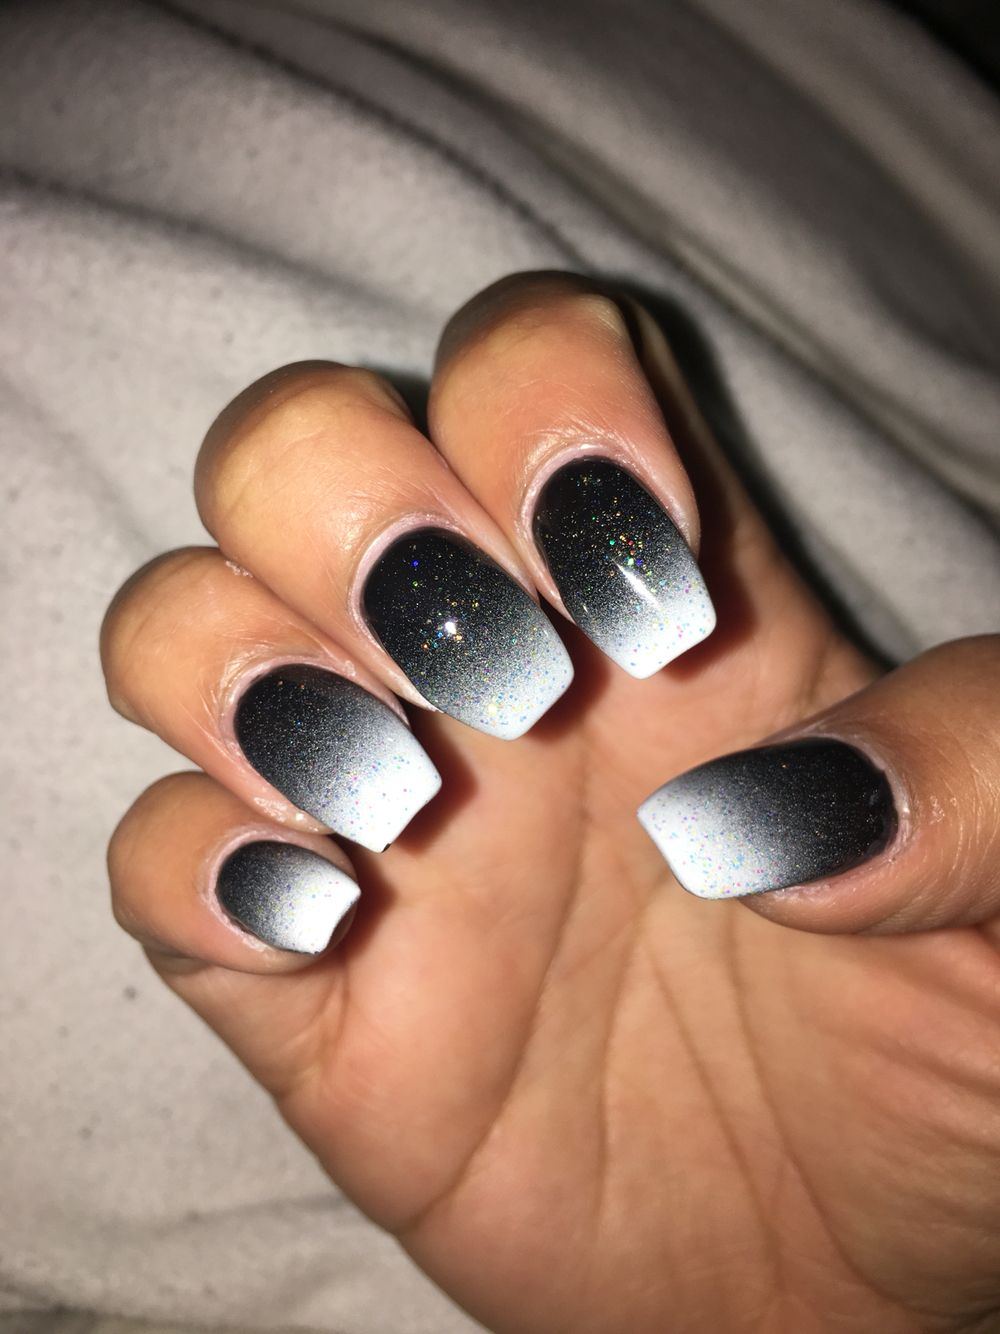 Black and white ombré nails | Nail designs | Pinterest | Black, Prom ...